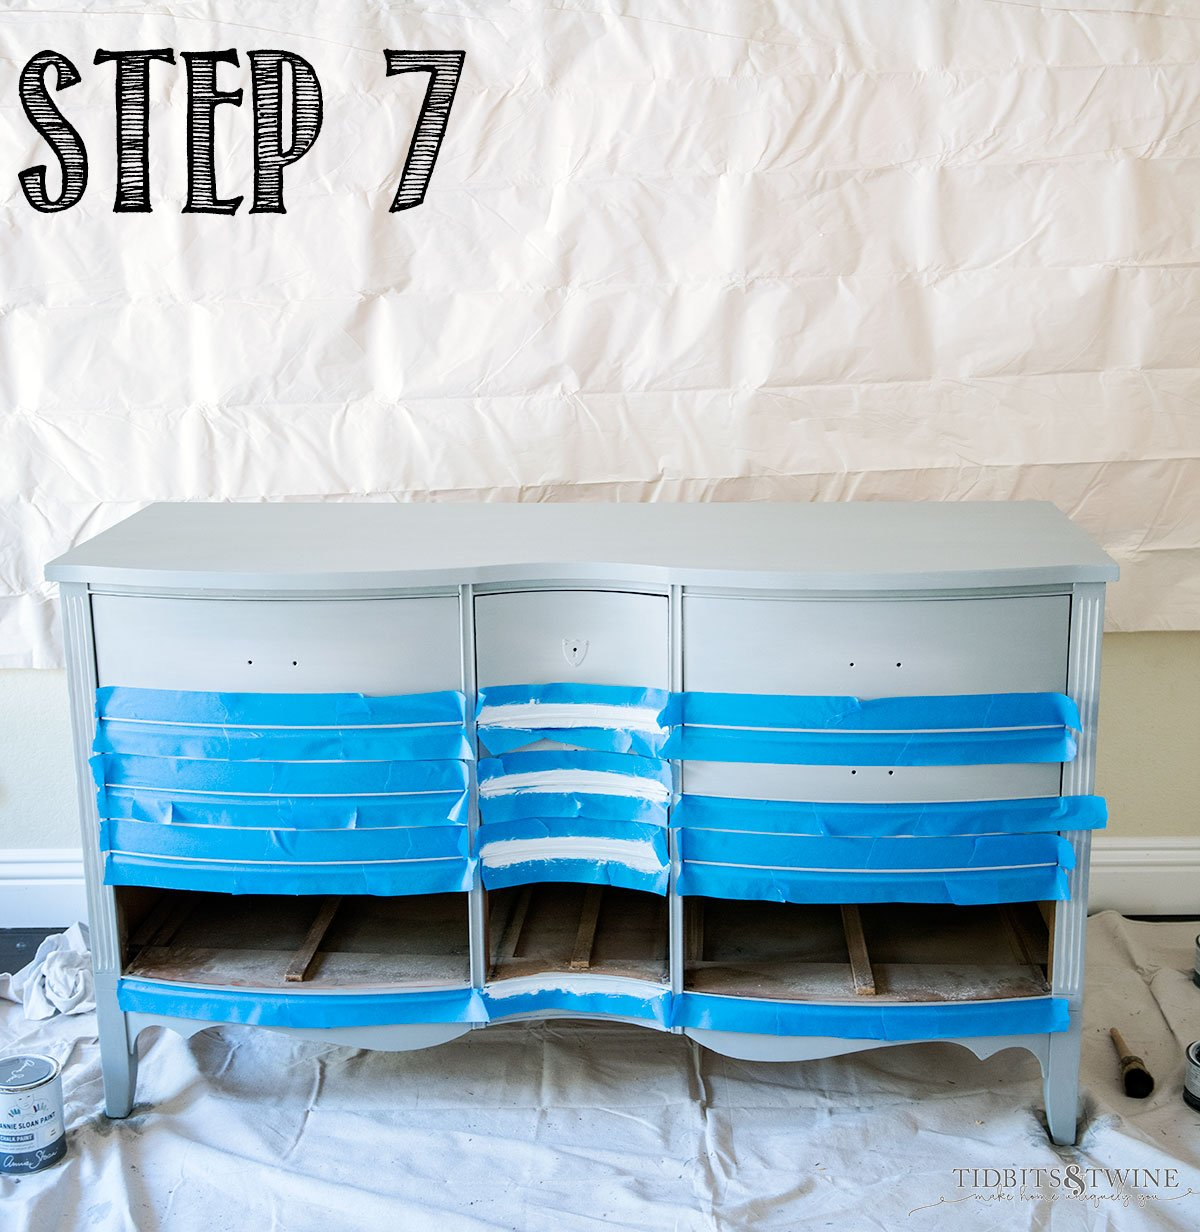 Antique dresser painted gray blue and taped off to paint white highlights